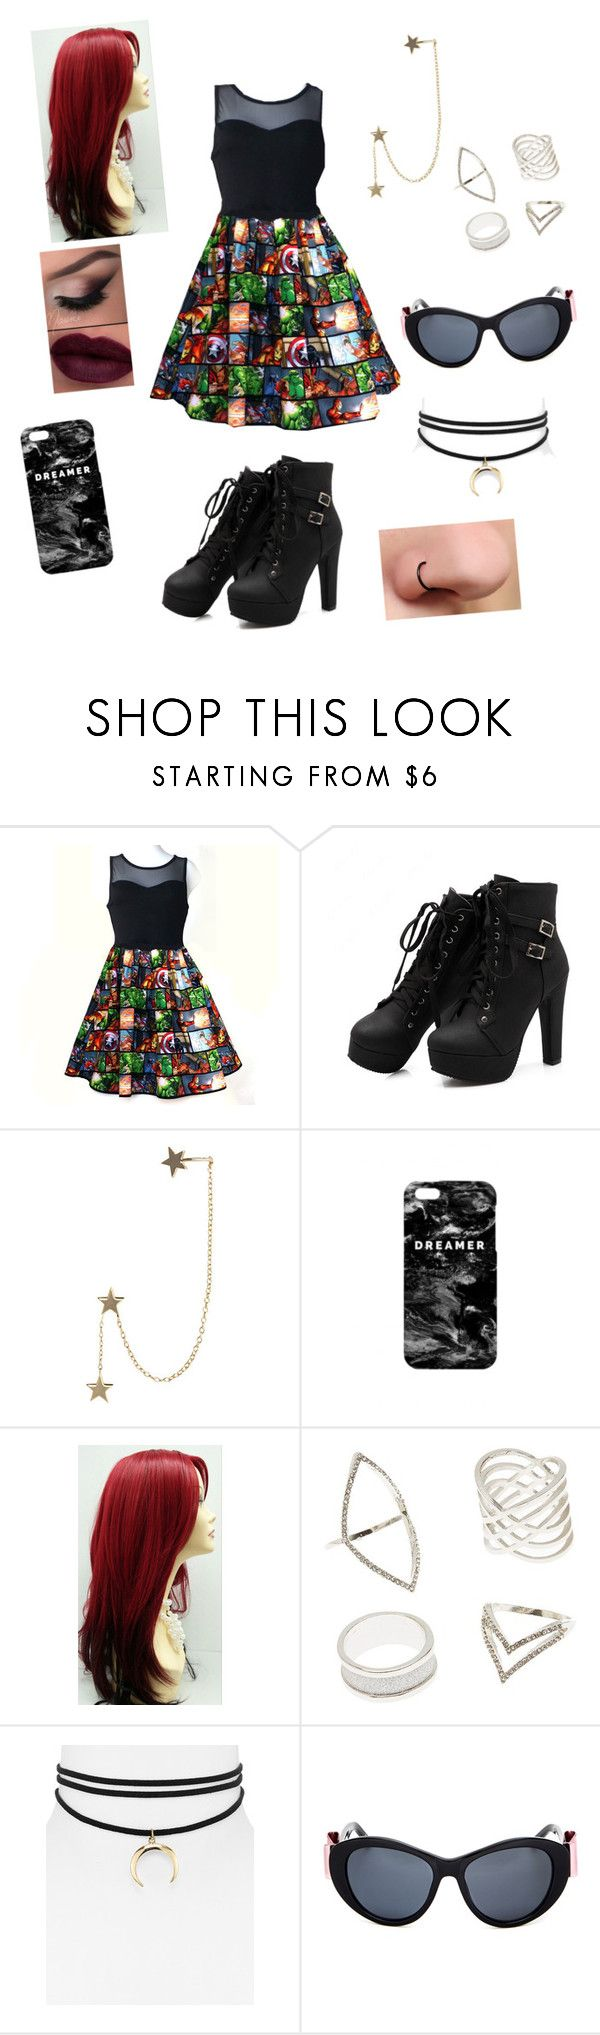 """""""Under $100 Dress"""" by maddiehale ❤ liked on Polyvore featuring Zimmermann, Mr. Gugu & Miss Go, Charlotte Russe, Jules Smith and Linda Farrow"""